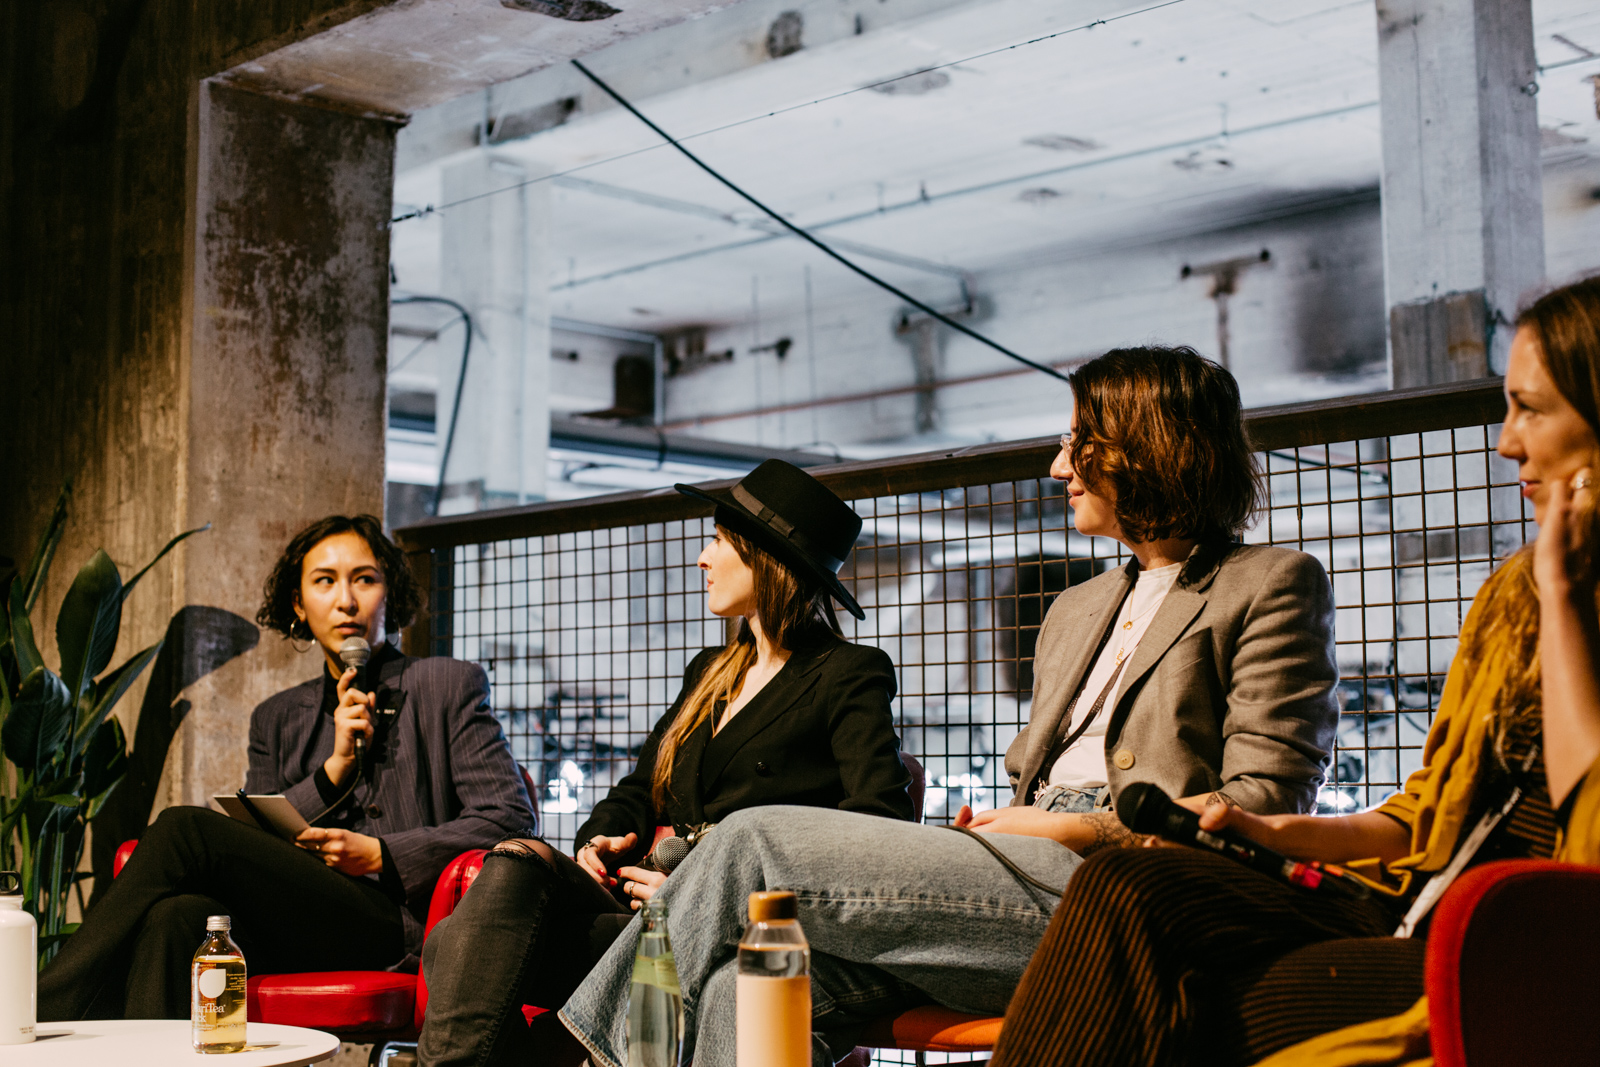 sustainable-fashion-matterz-panel-8.jpg